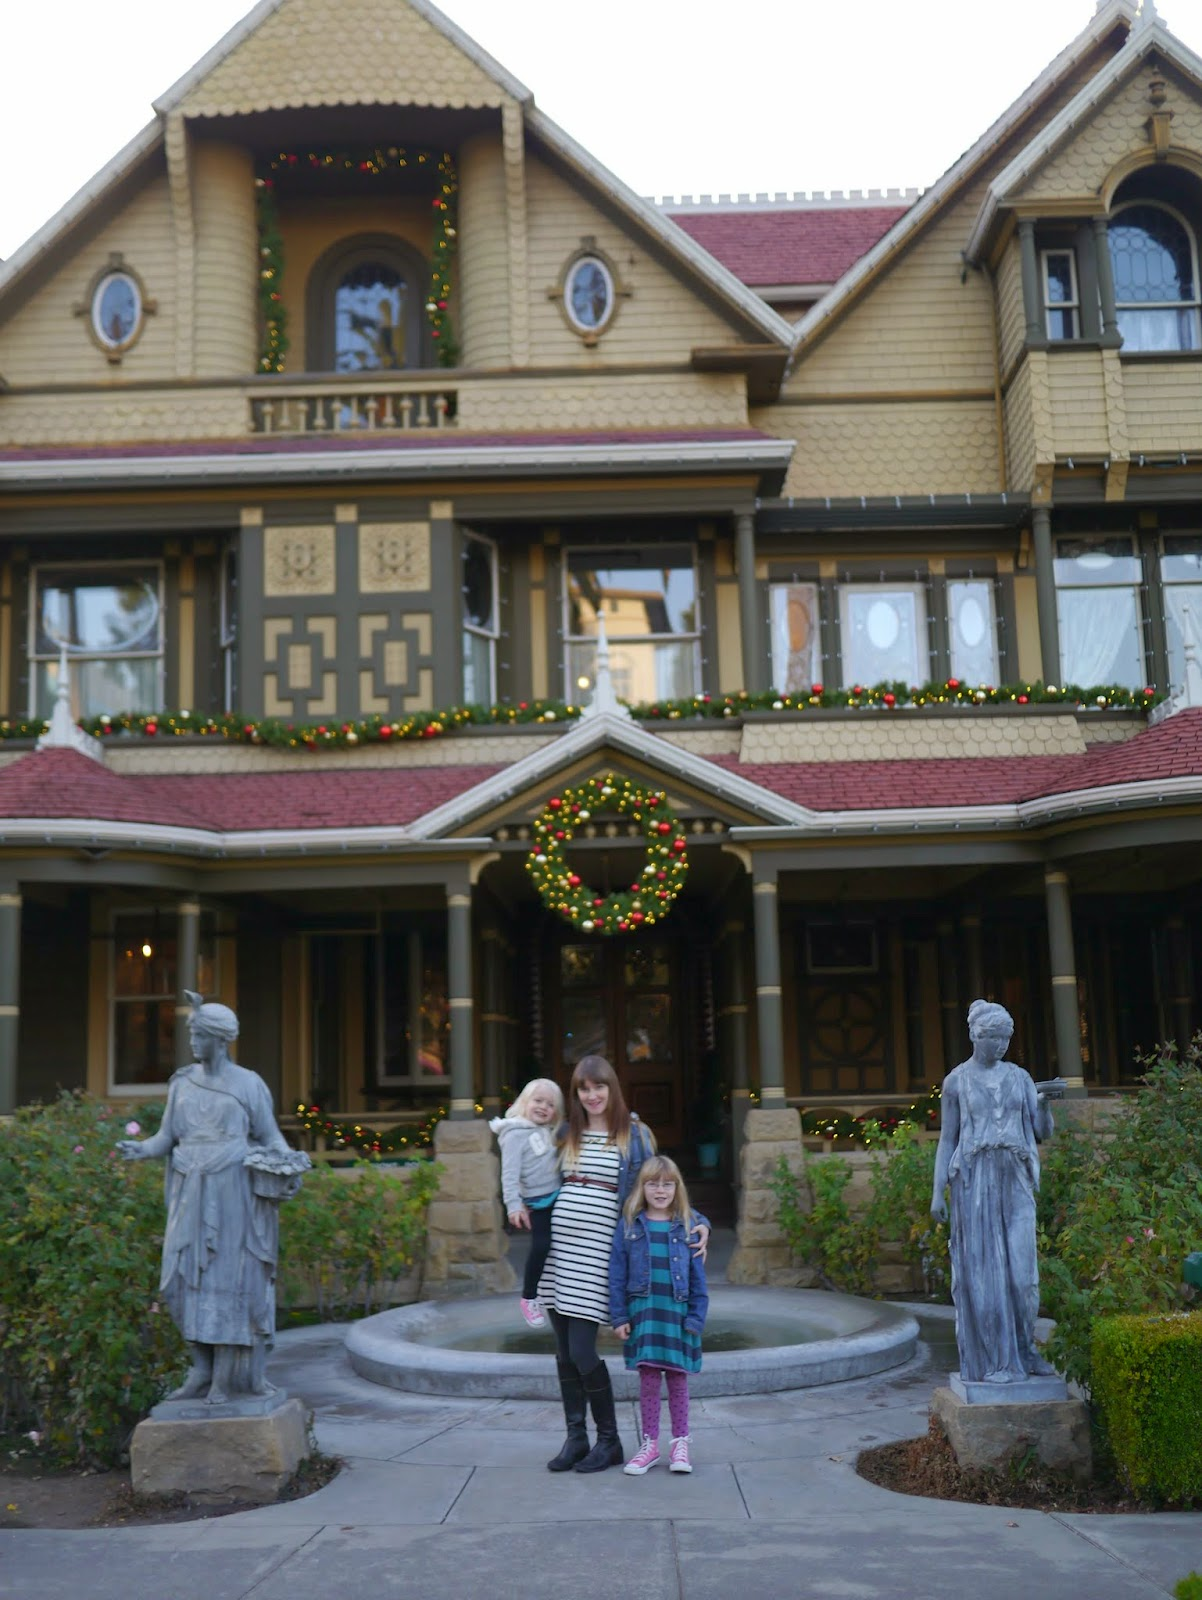 Little hiccups winchester mystery house san jose for The winchester house